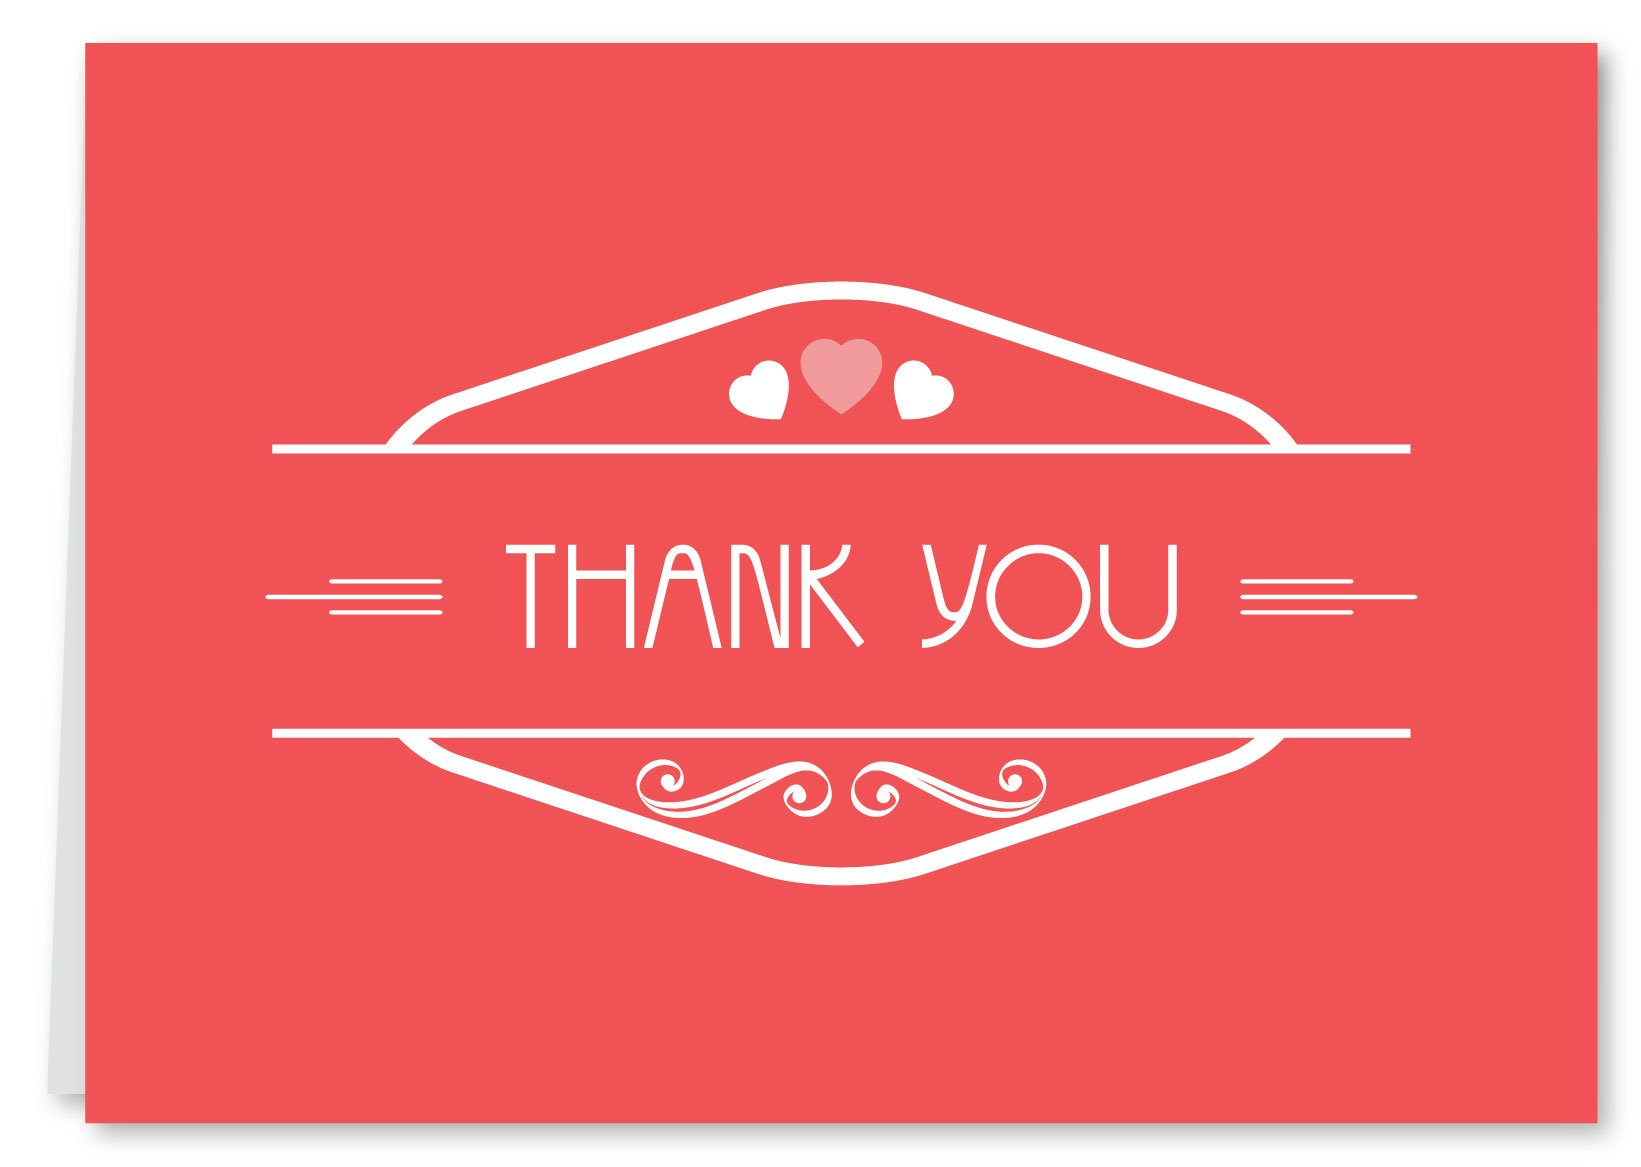 Thank you cards vouchers buy thank you vouchers cards online gc4 kristyandbryce Gallery